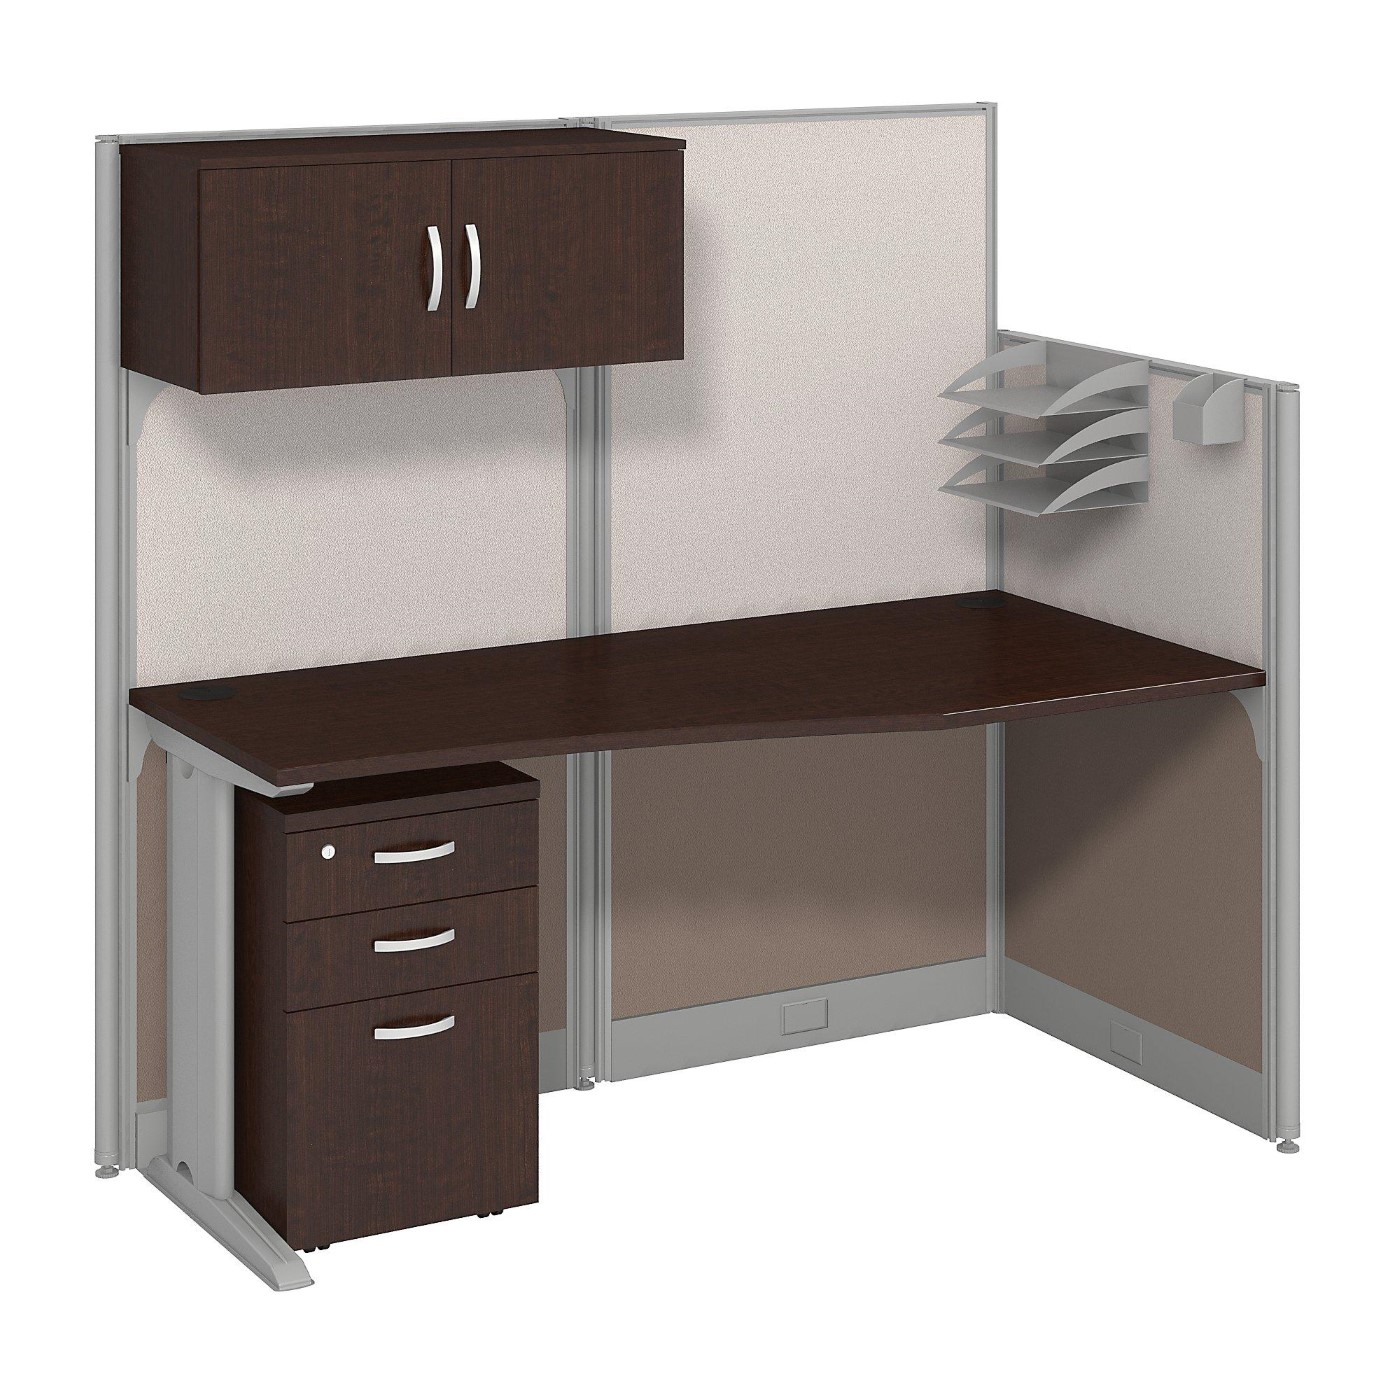 BUSH BUSINESS FURNITURE OFFICE IN AN HOUR 65W X 33D CUBICLE WORKSTATION WITH STORAGE. FREE SHIPPING.  SALE DEDUCT 10% MORE ENTER '10percent' IN COUPON CODE BOX WHILE CHECKING OUT. ENDS 5-31-20.